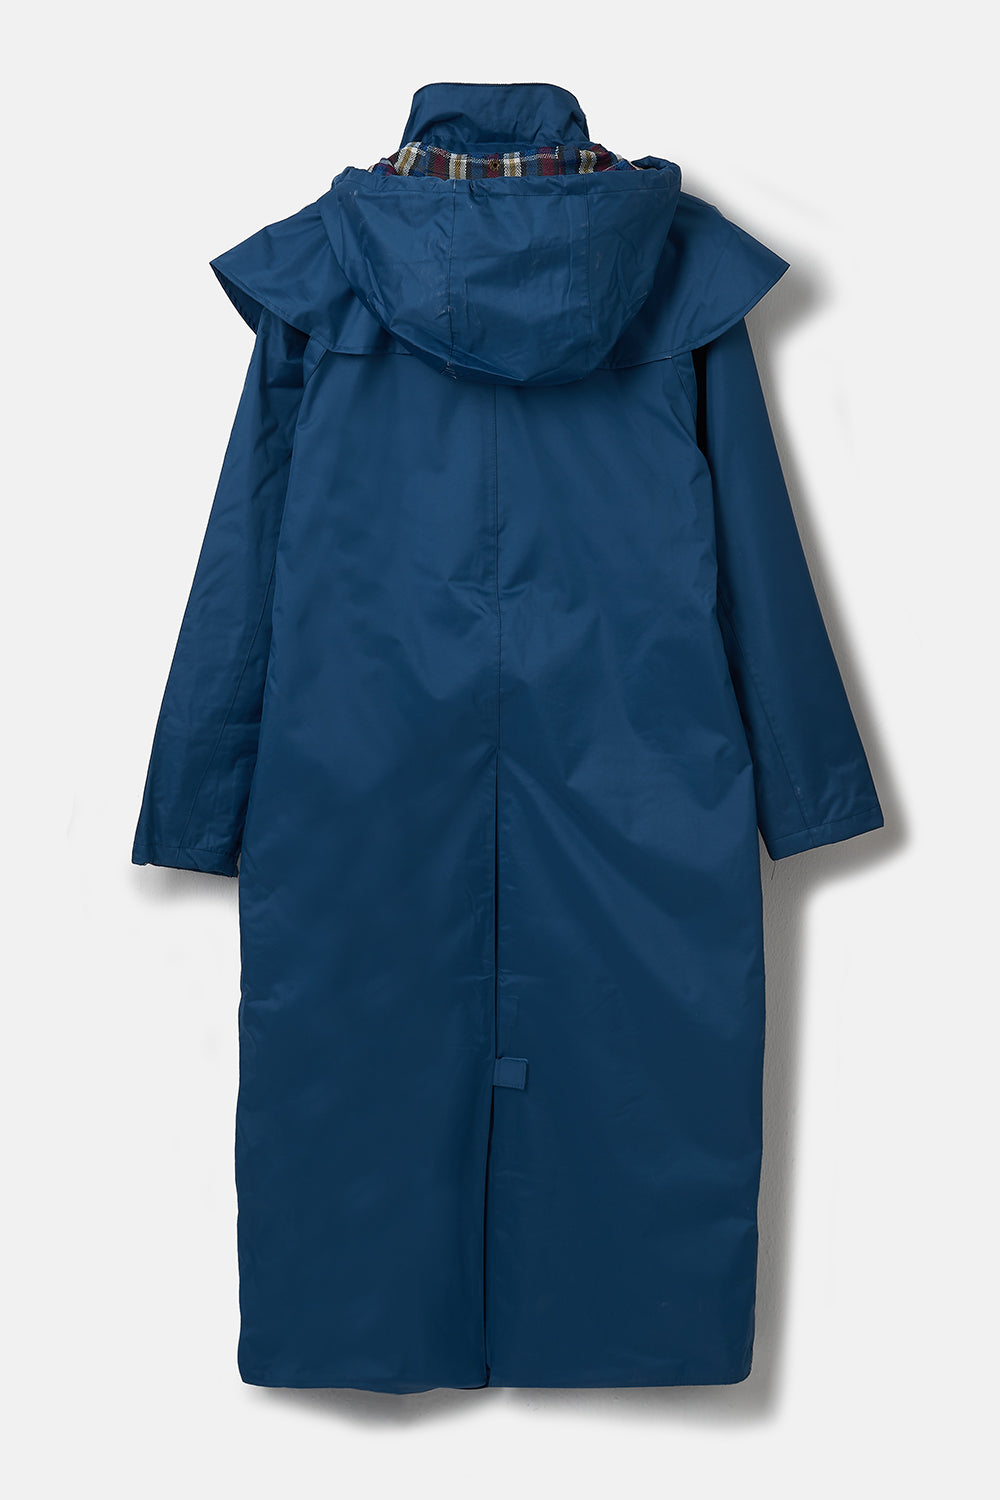 Lighthouse Outback Coat -Full Length Womens Raincoat - Deep Sea